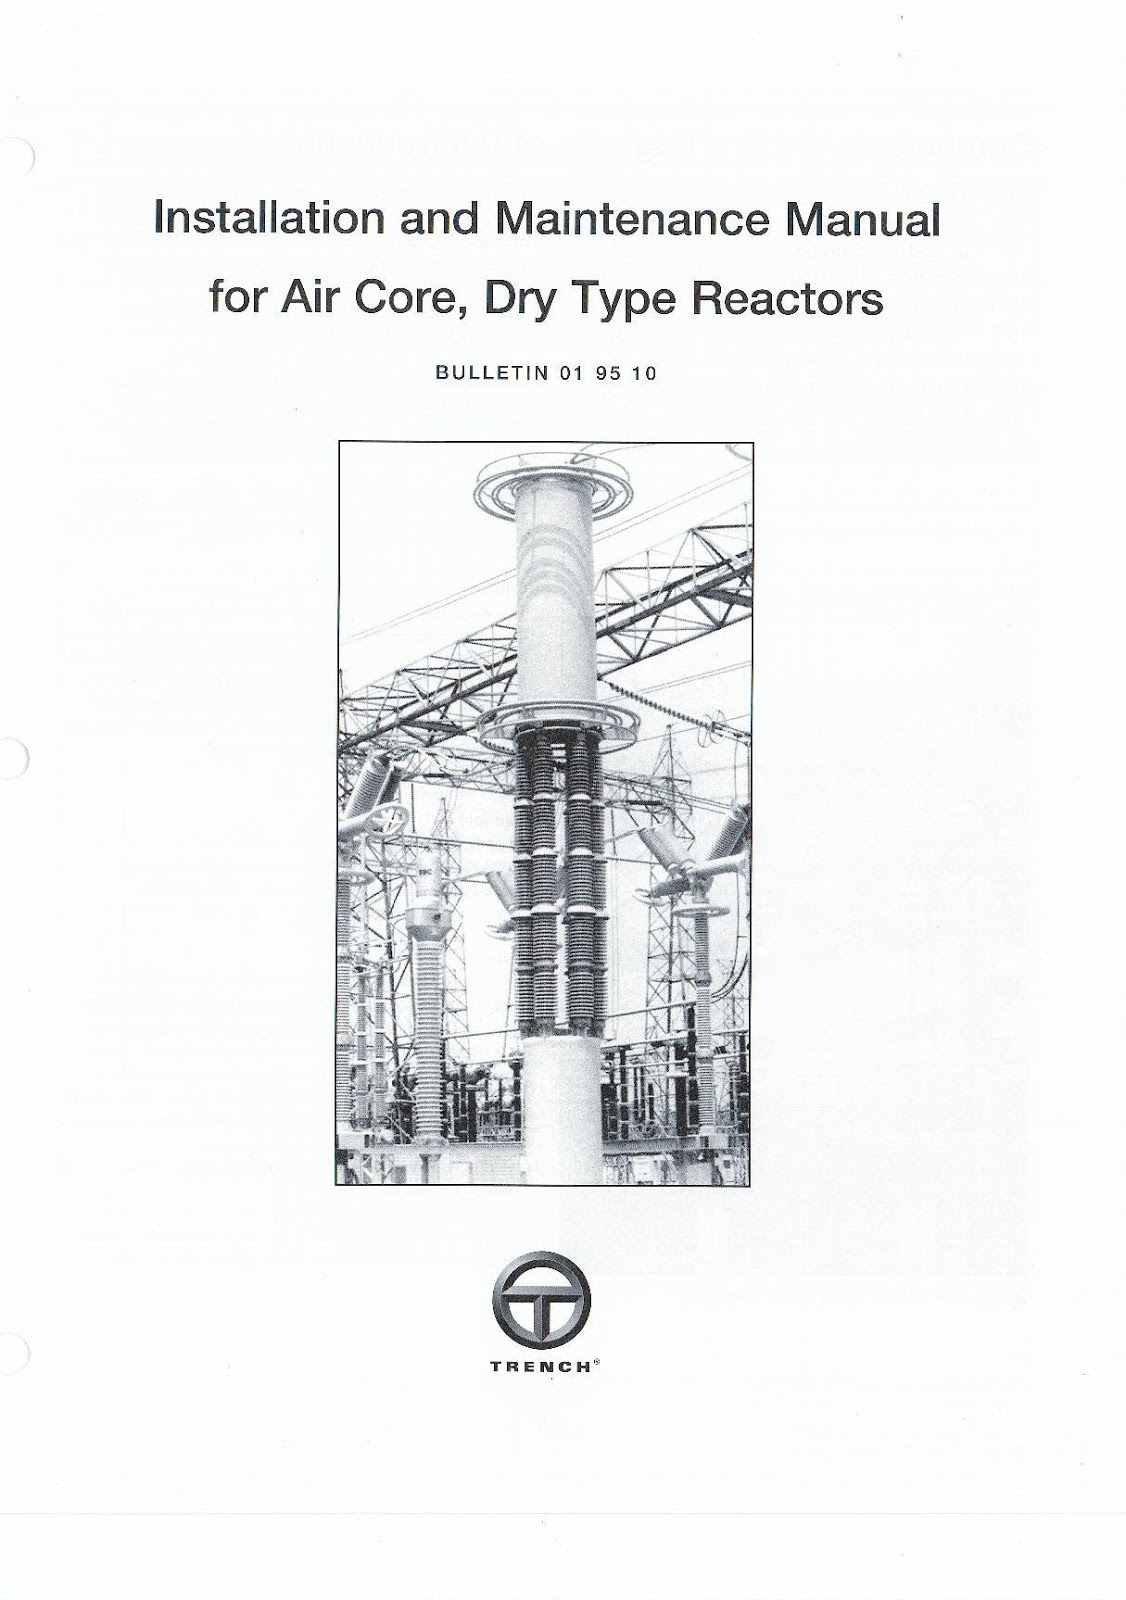 Installation and maintenance manual for air core dry type reactor